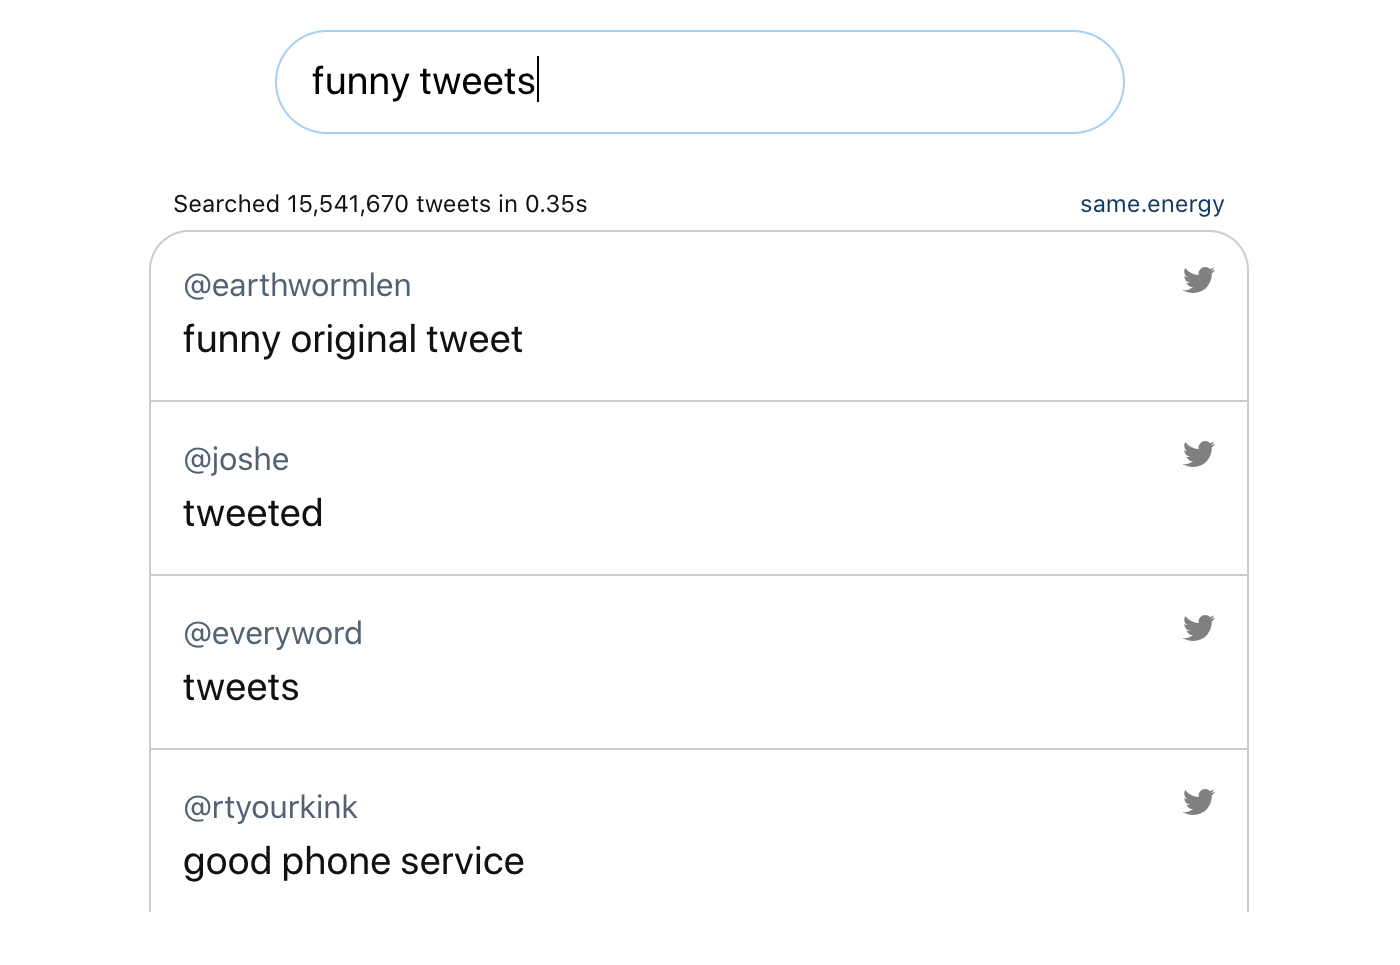 The top results are 'funny original tweet' and 'tweeted'. The use-mention distinction strikes again.